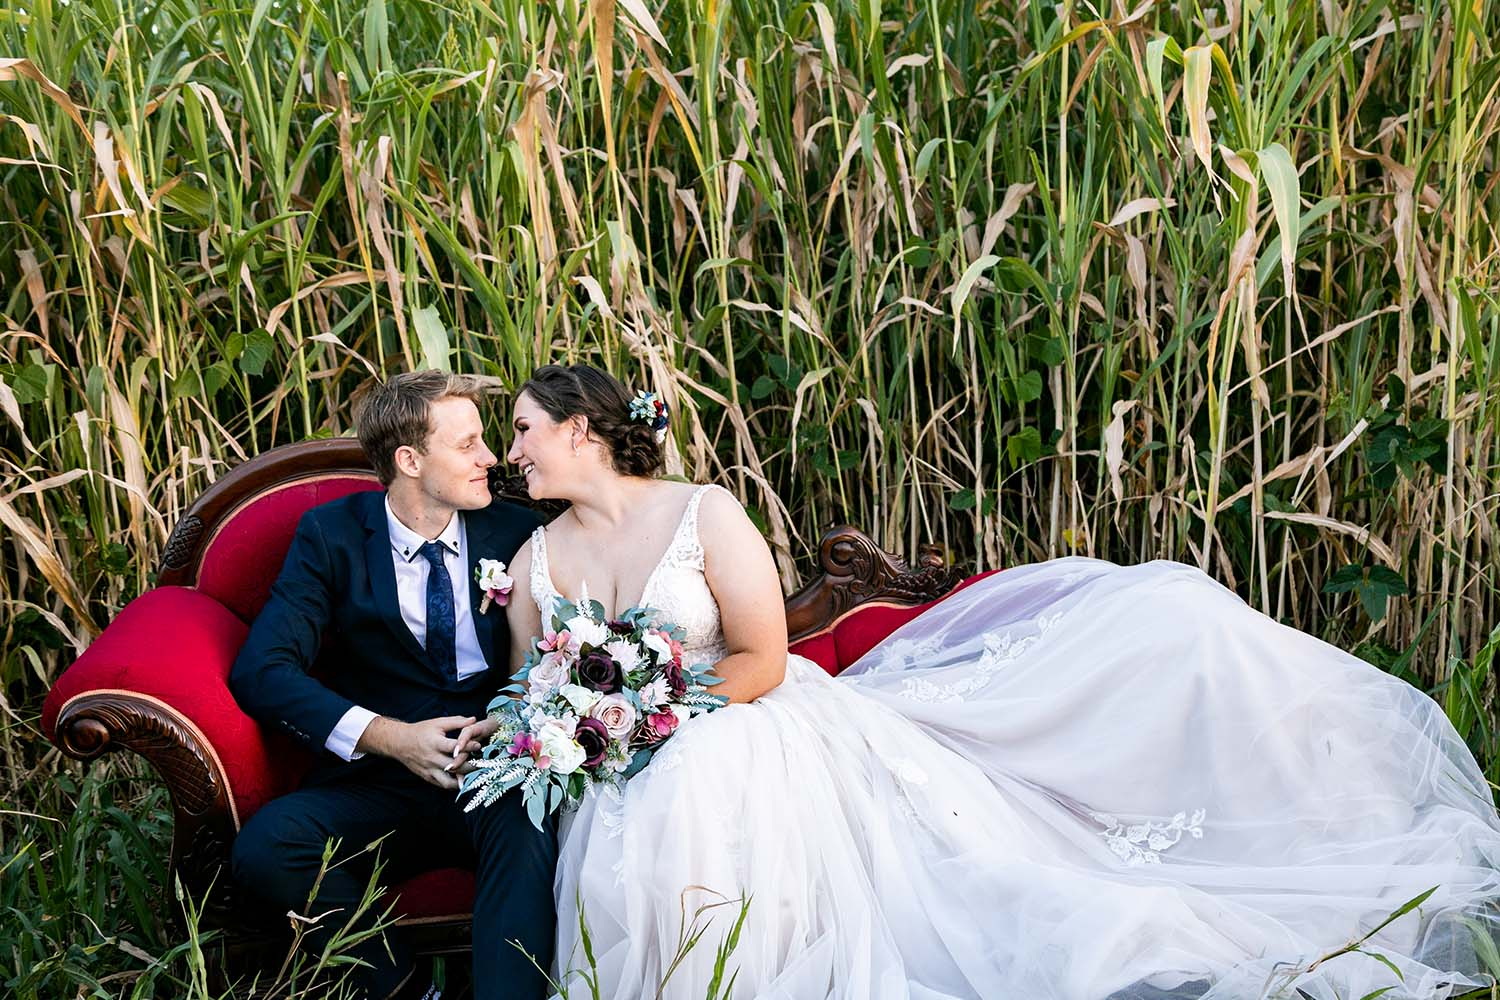 Wedding Photography - Red Chair in field